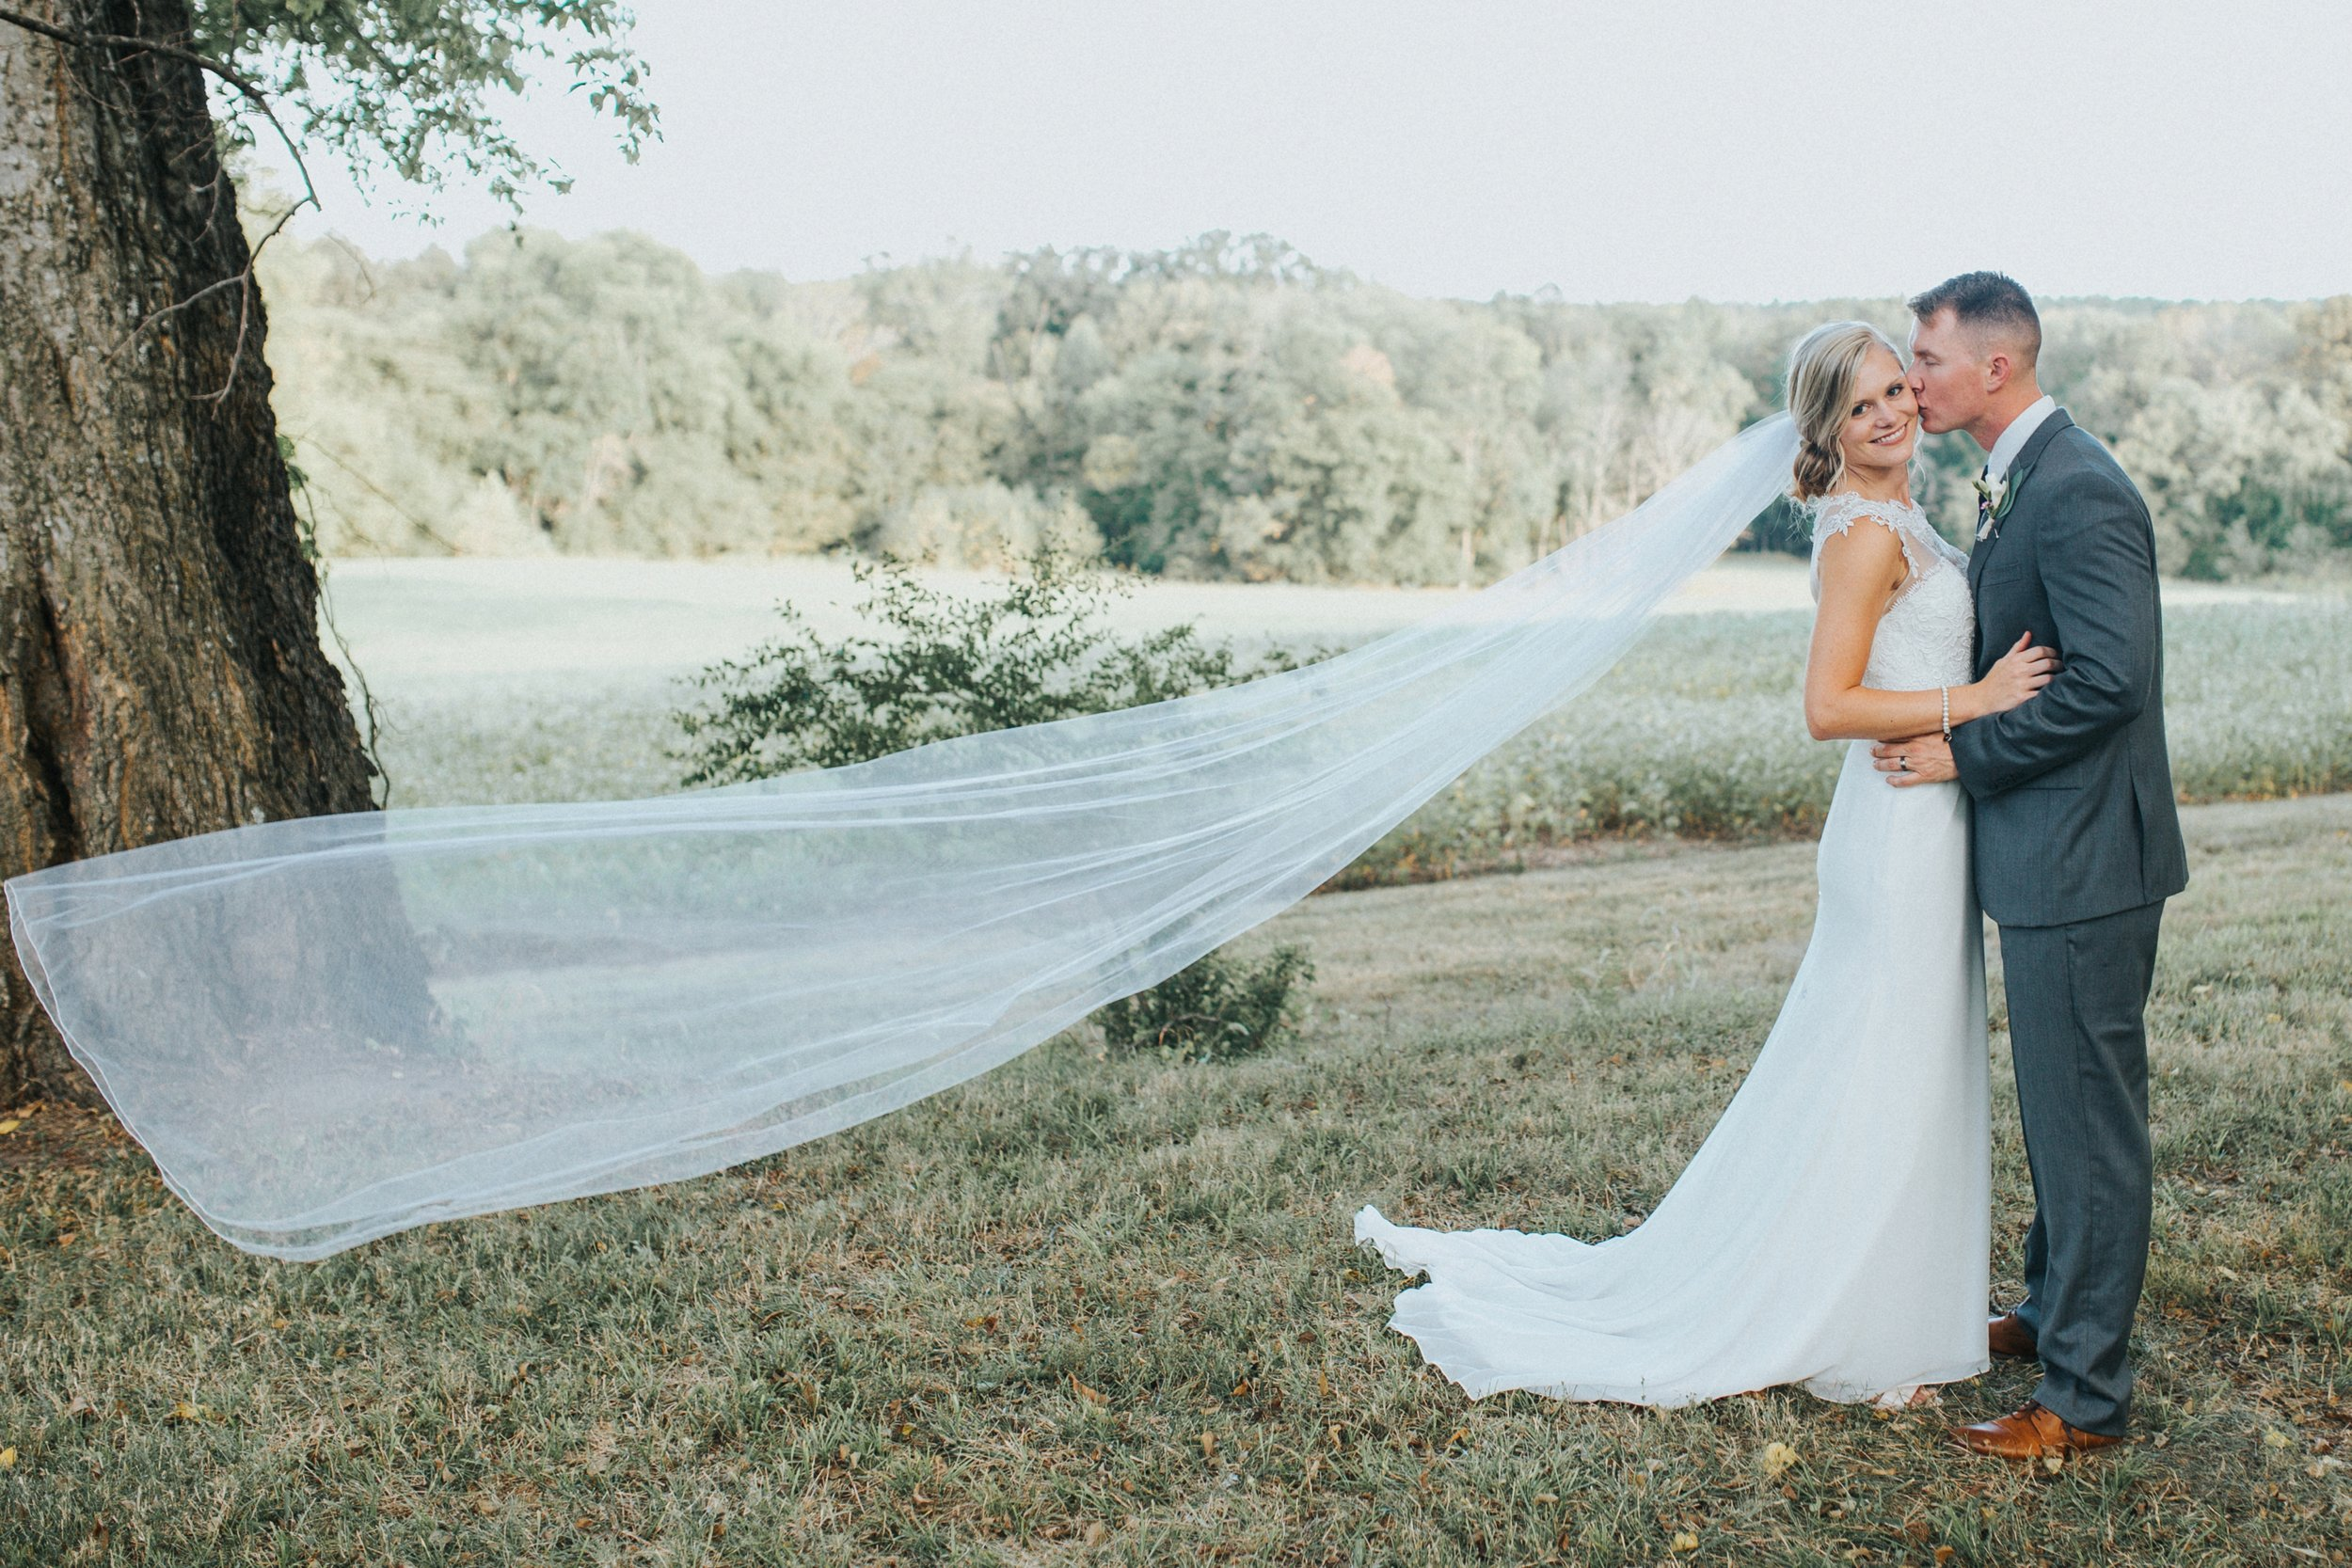 Virginia wedding photographer, Charlottesville wedding photographer, the hunt at Selma wedding, amelia virginia wedding photographer_0210.jpg